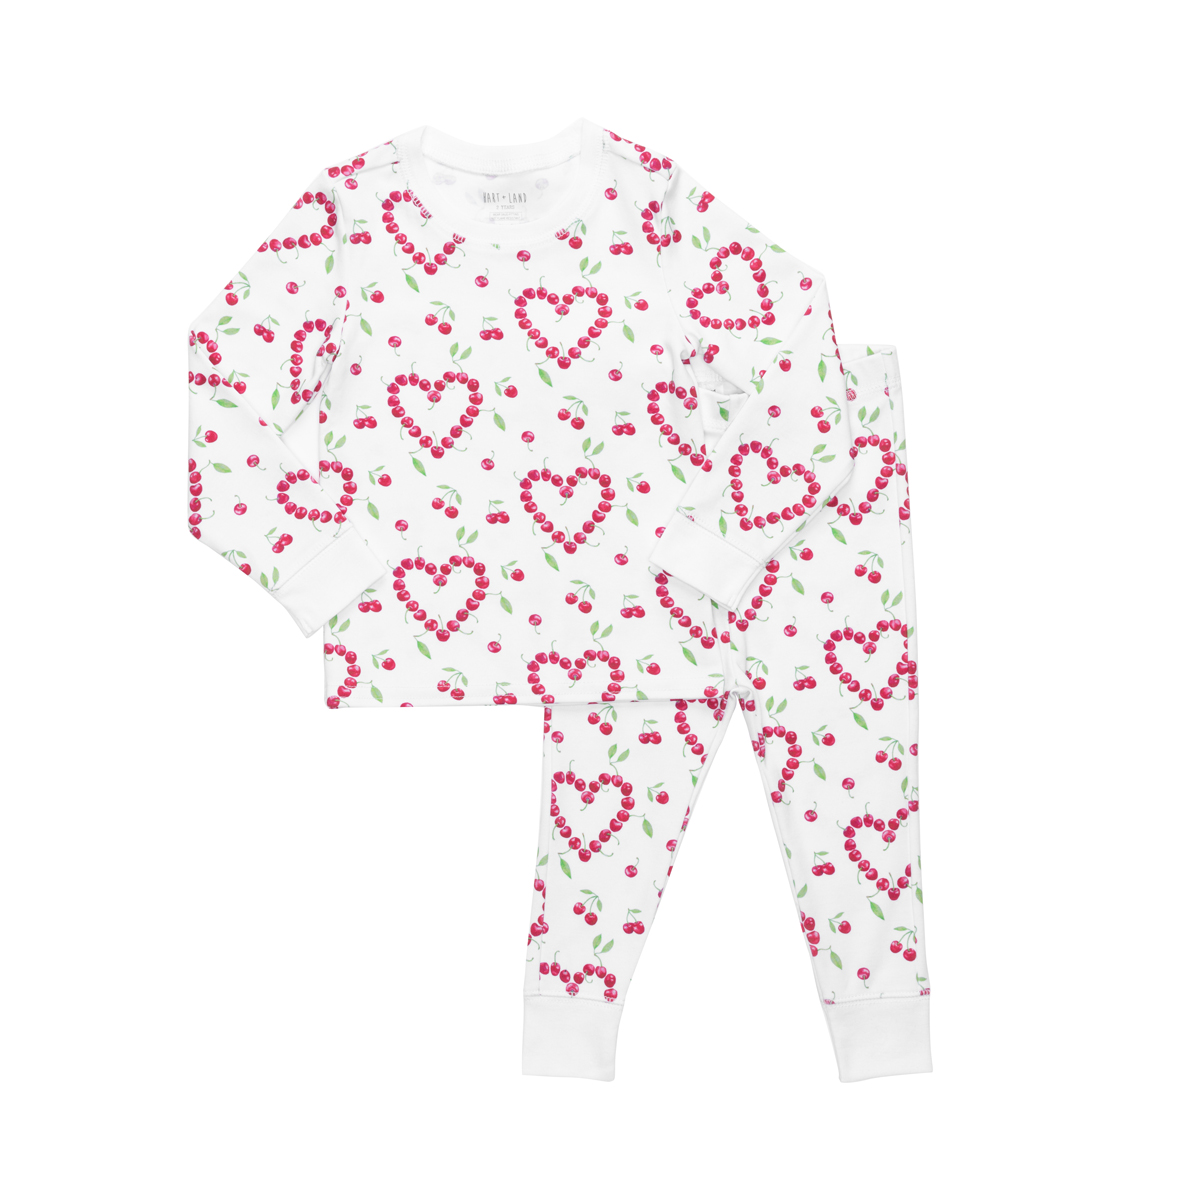 Hart + Land valentine's pima cotton PJs